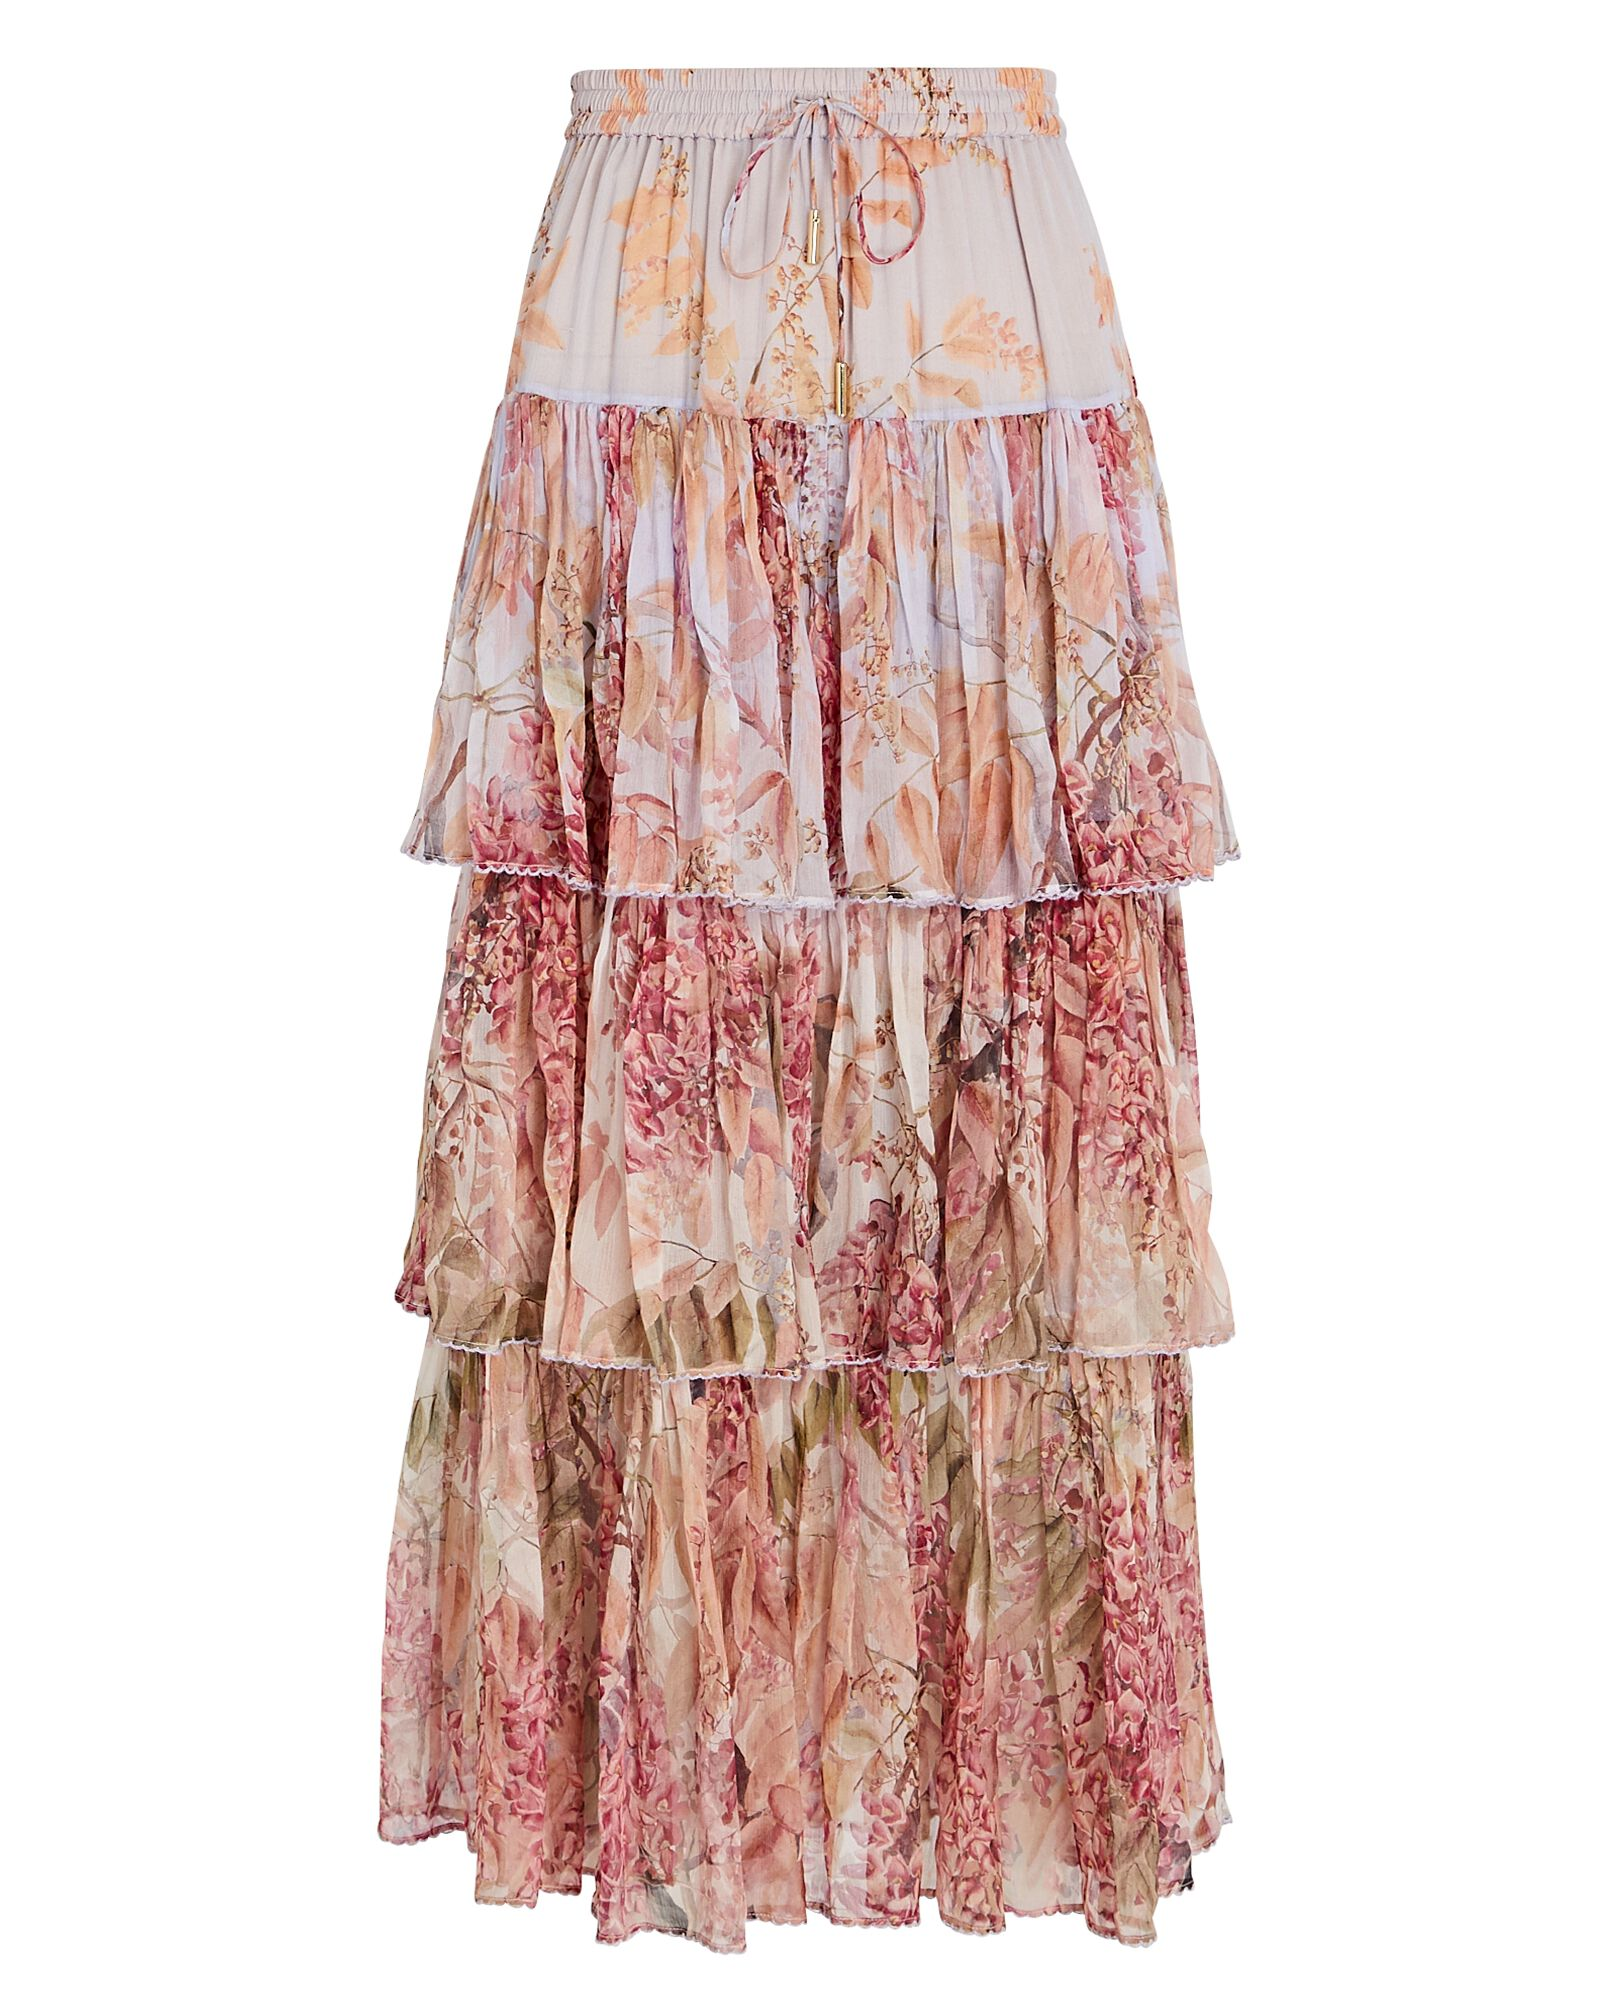 Botanica Tiered Silk Floral Skirt, LIGHT PURPLE/PINK, hi-res